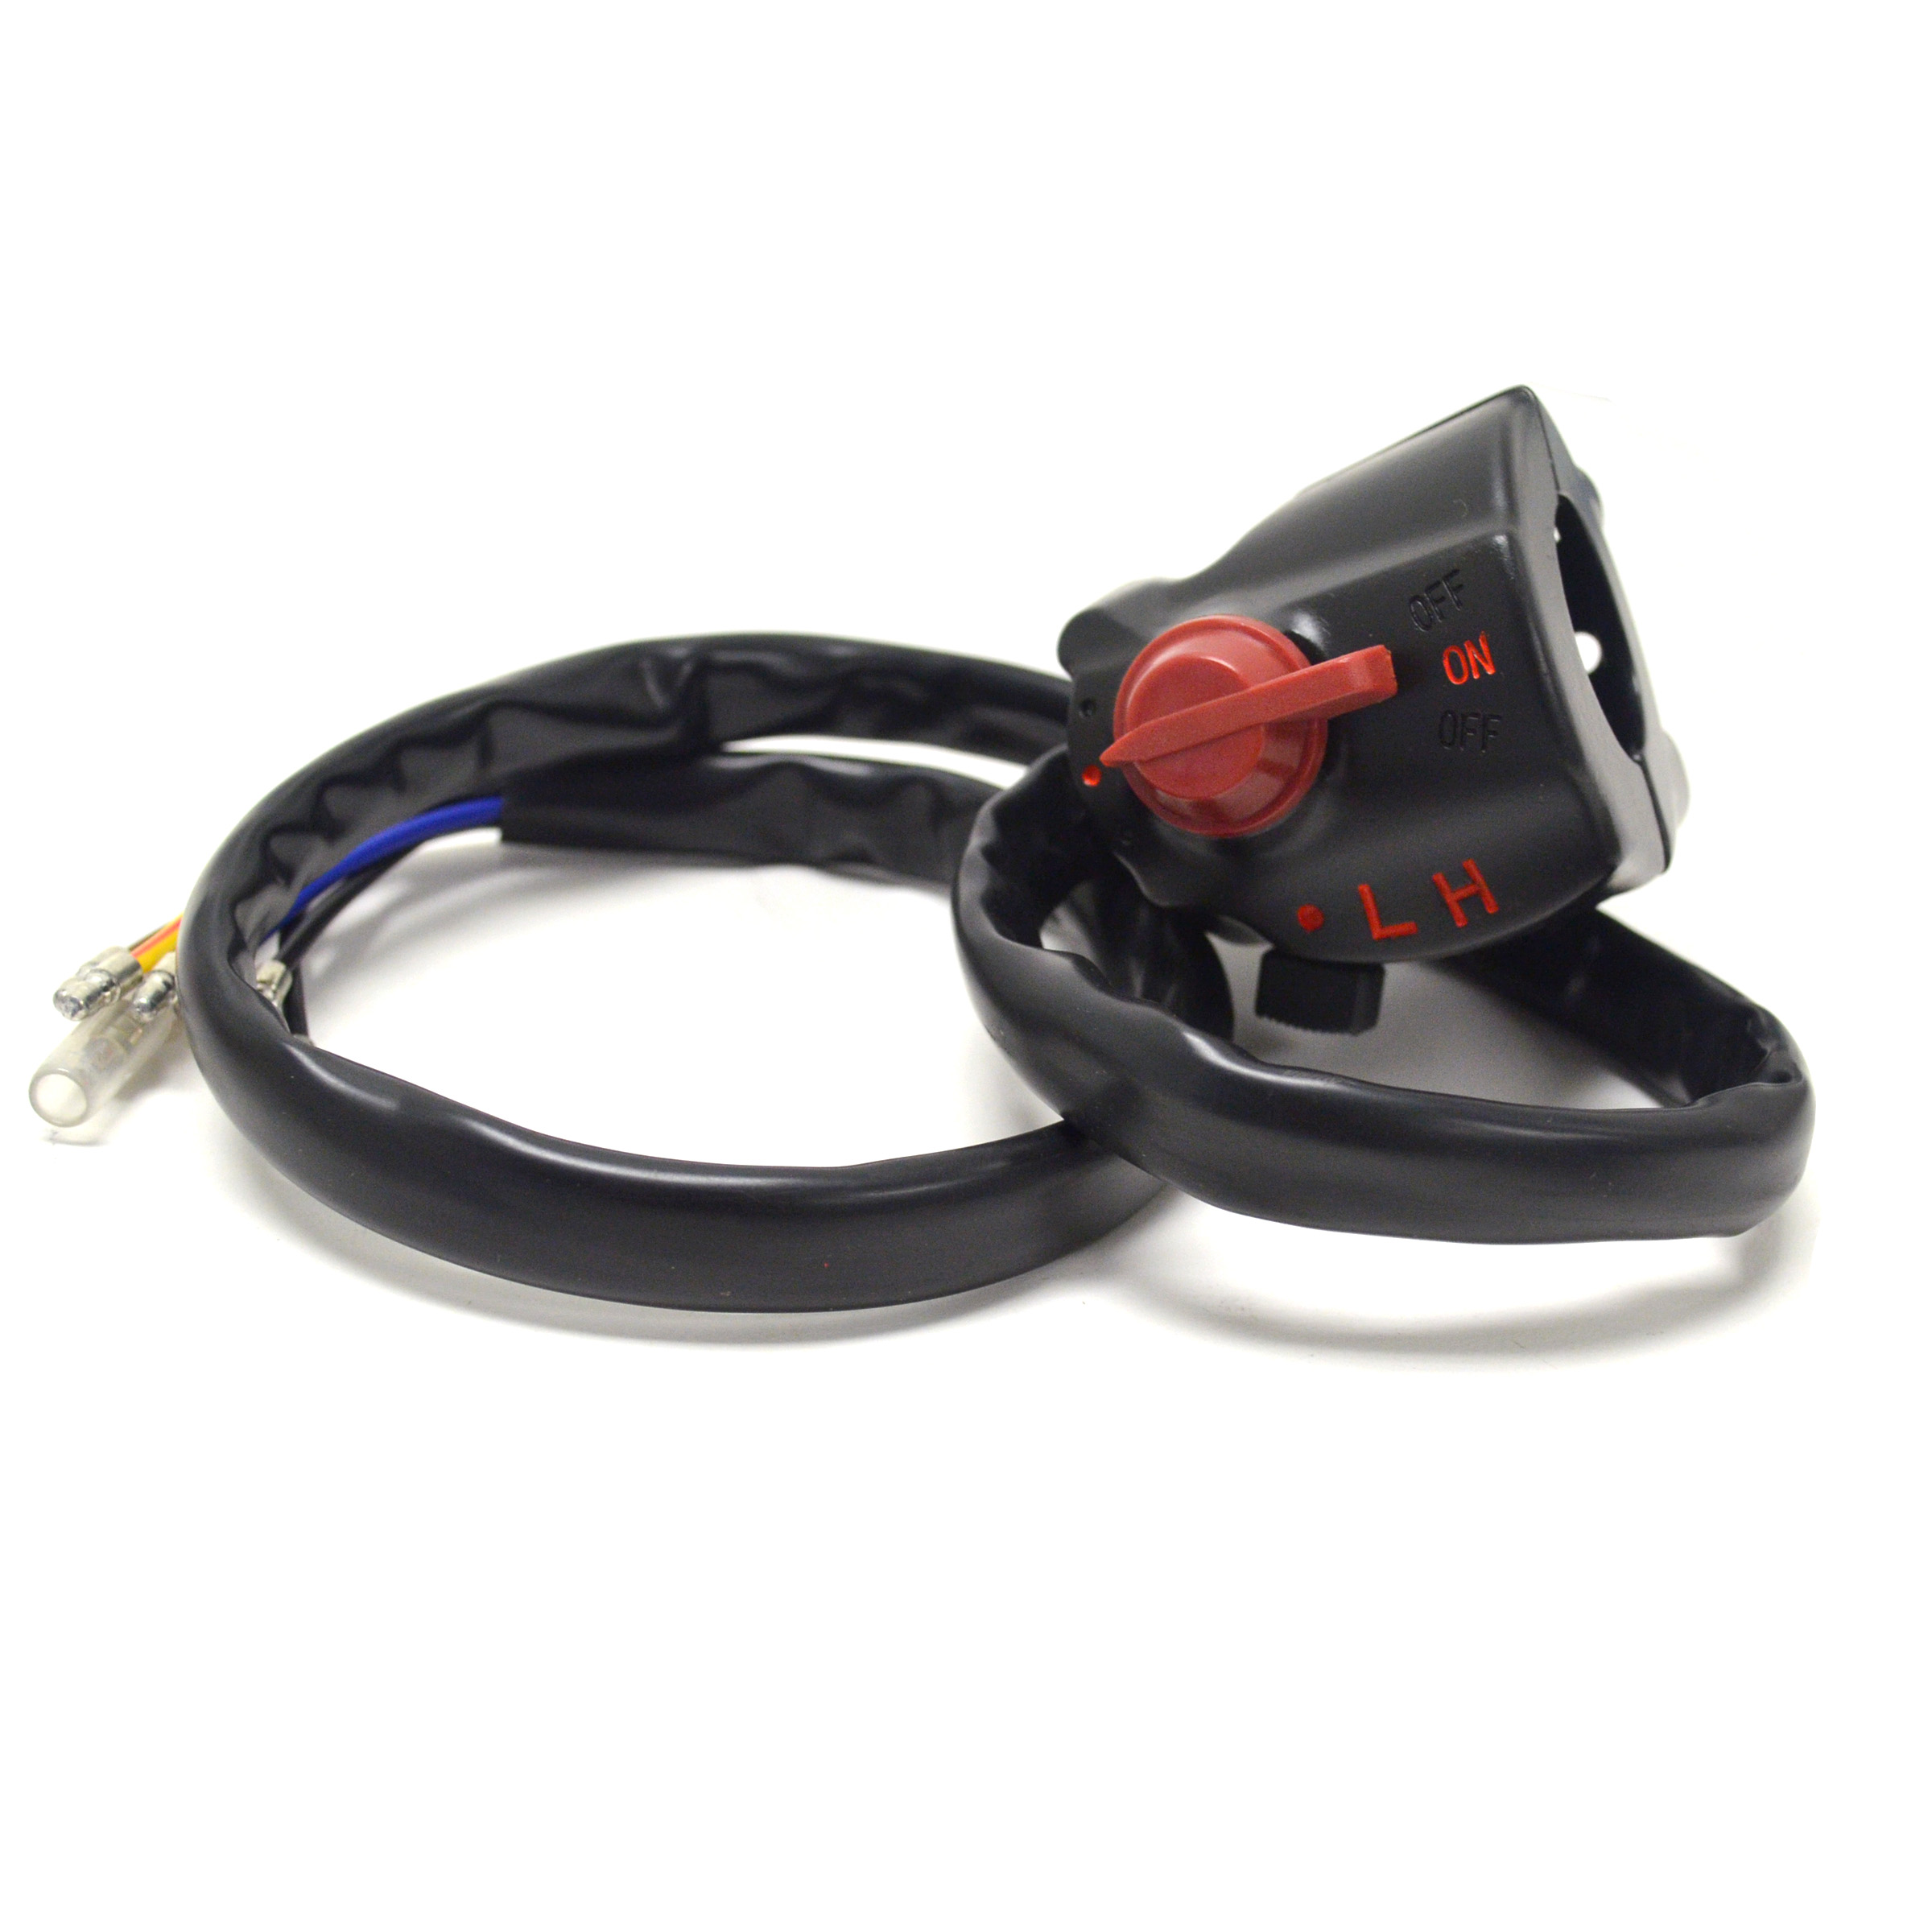 1971 cb750 wiring harness  1971  get free image about